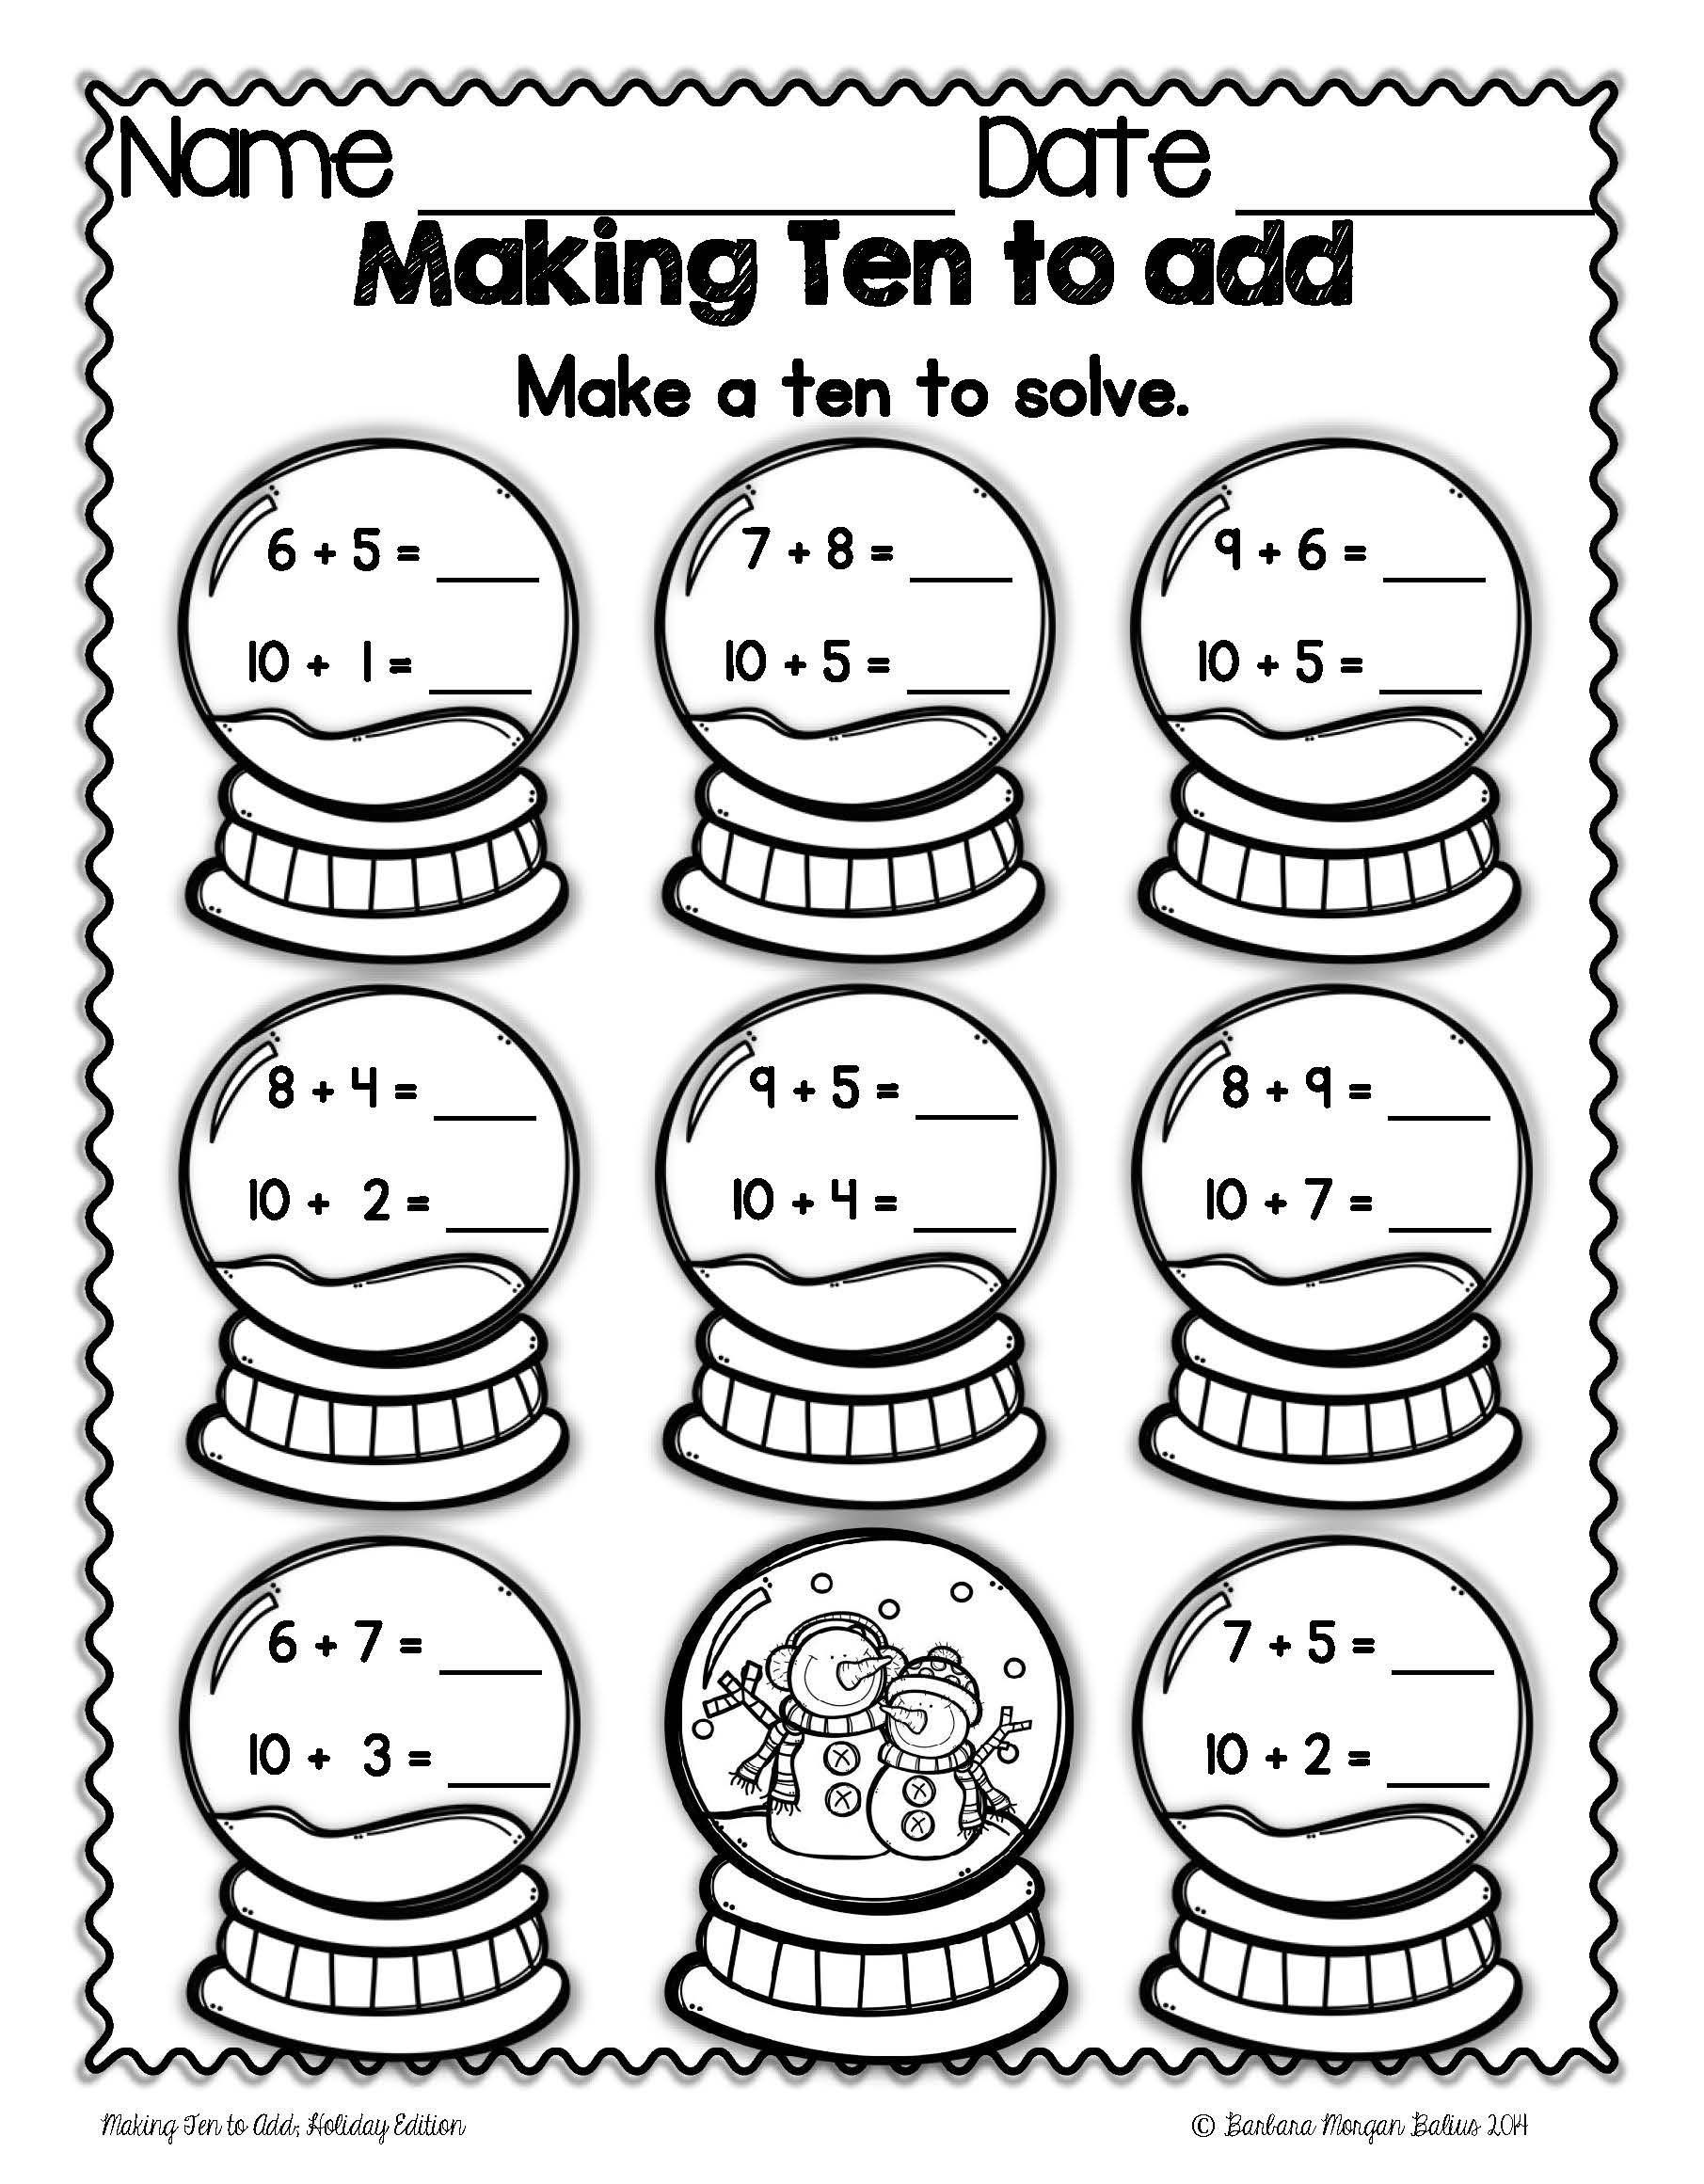 Go Math Kindergarten Worksheets Worksheet For Kindergarten Halloween Math Worksheets Holiday Math Worksheets Kindergarten Math Worksheets